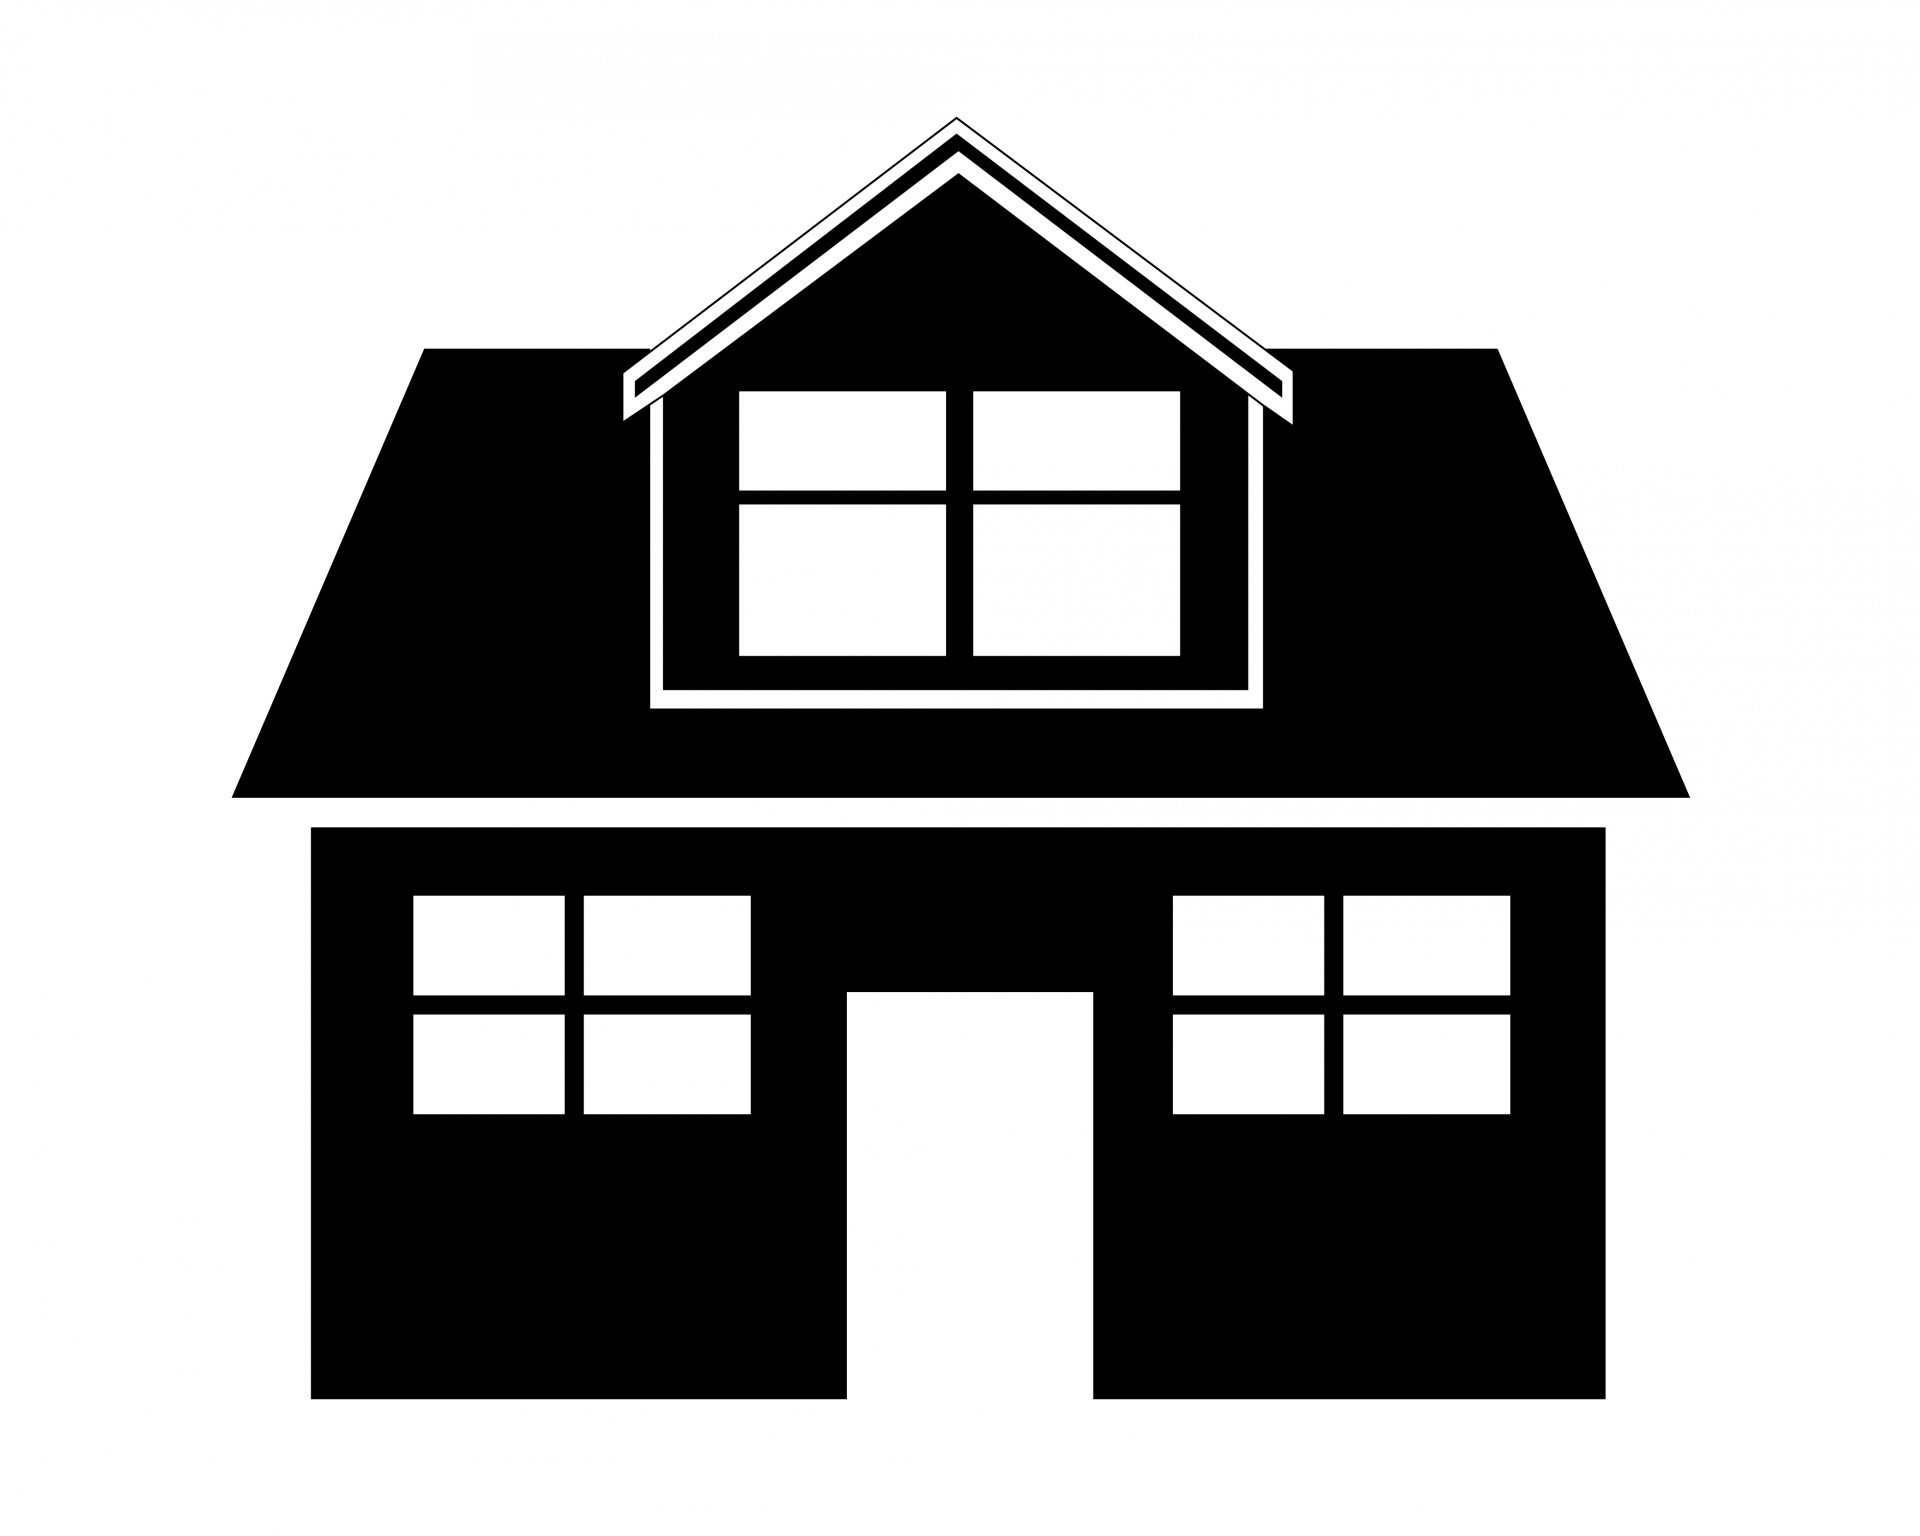 hight resolution of house clipart clipart cliparts for you 2